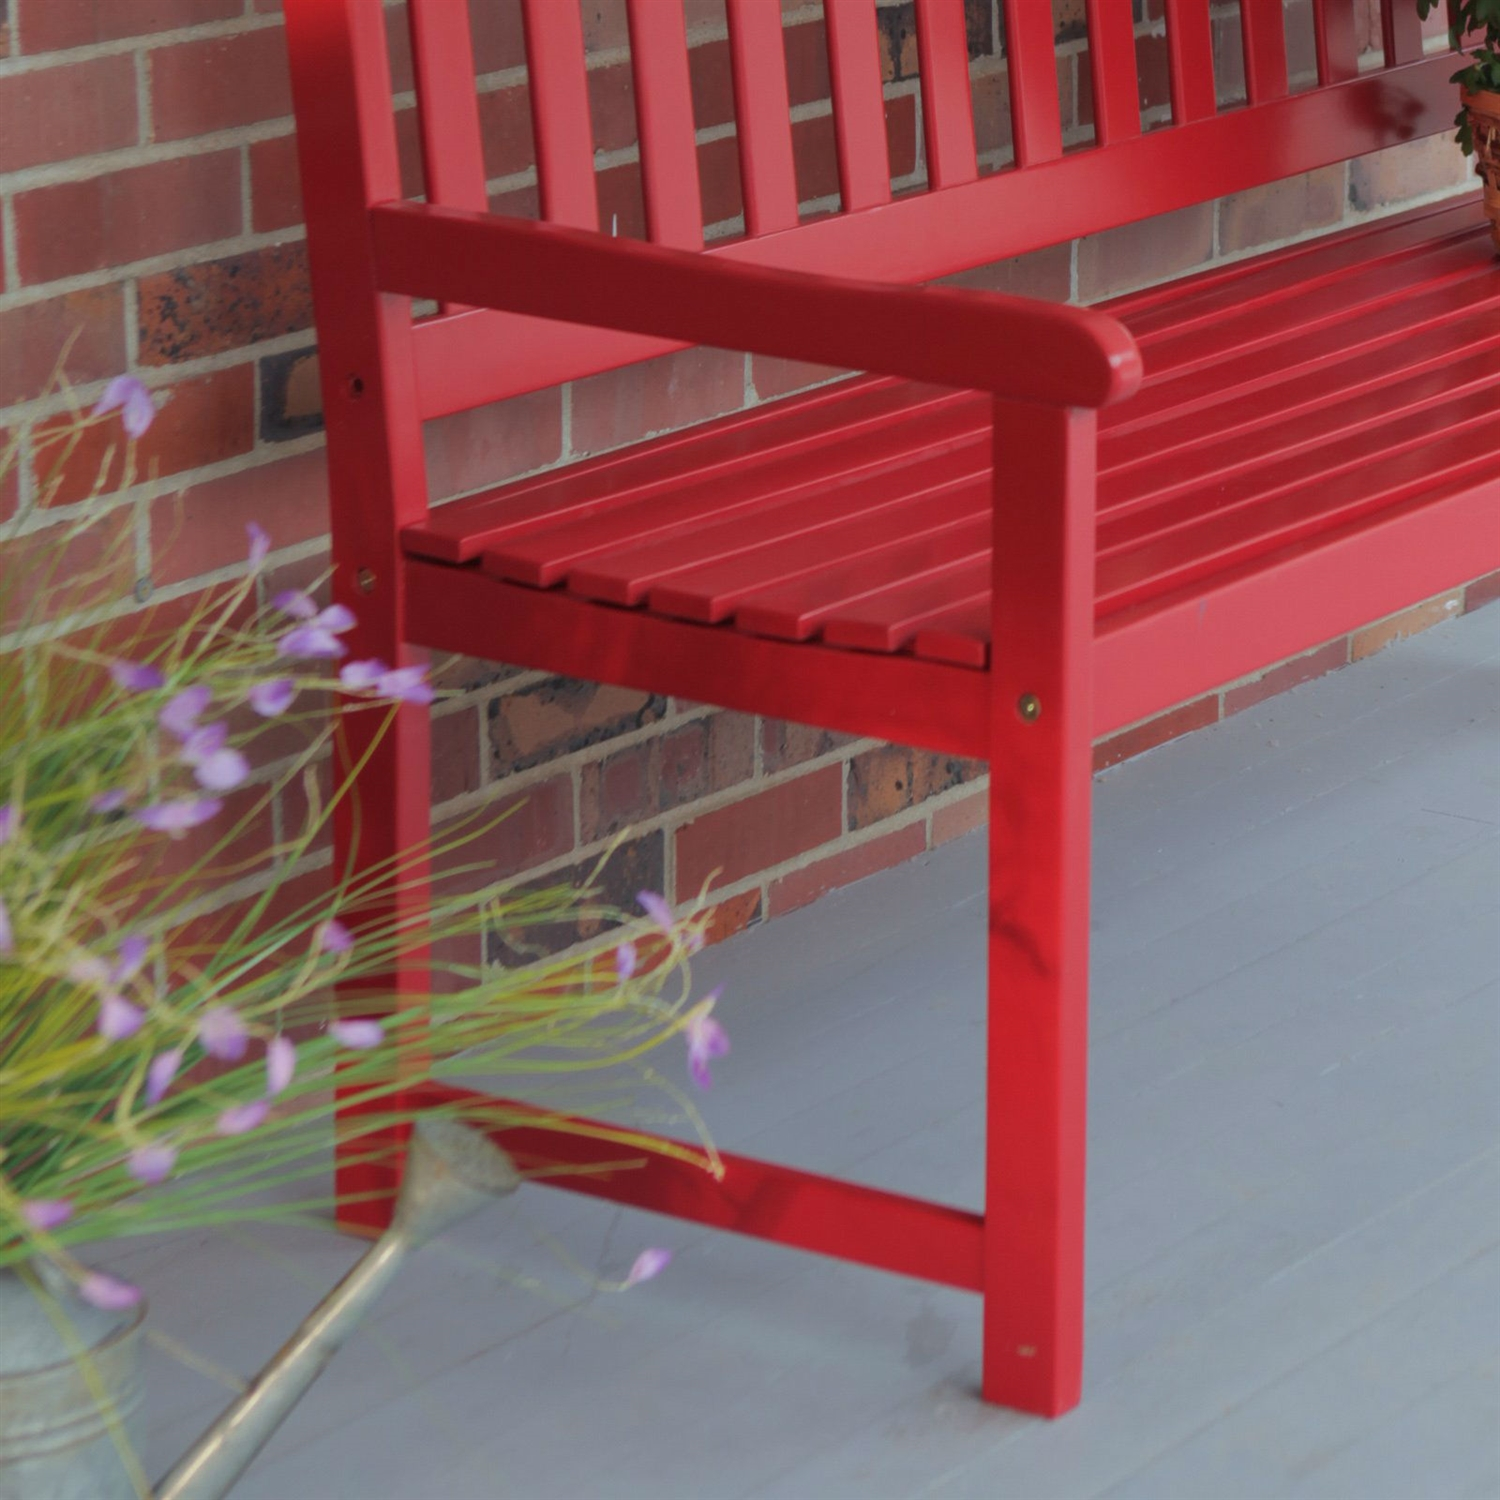 5-Ft Outdoor Garden Bench in Red Wood Finish with Armrest on outdoor pergola designs, outdoor furniture designs, outdoor garden bench with storage, outdoor pond designs, outdoor kitchen designs, outdoor garden bench white, outdoor bbq designs, outdoor planter designs, outdoor fence designs, outdoor shed designs, outdoor brick wall designs, outdoor water feature designs, outdoor dog house designs, outdoor fireplace designs, outdoor arbor designs, outdoor sofa designs, outdoor patio designs, outdoor trellis designs,